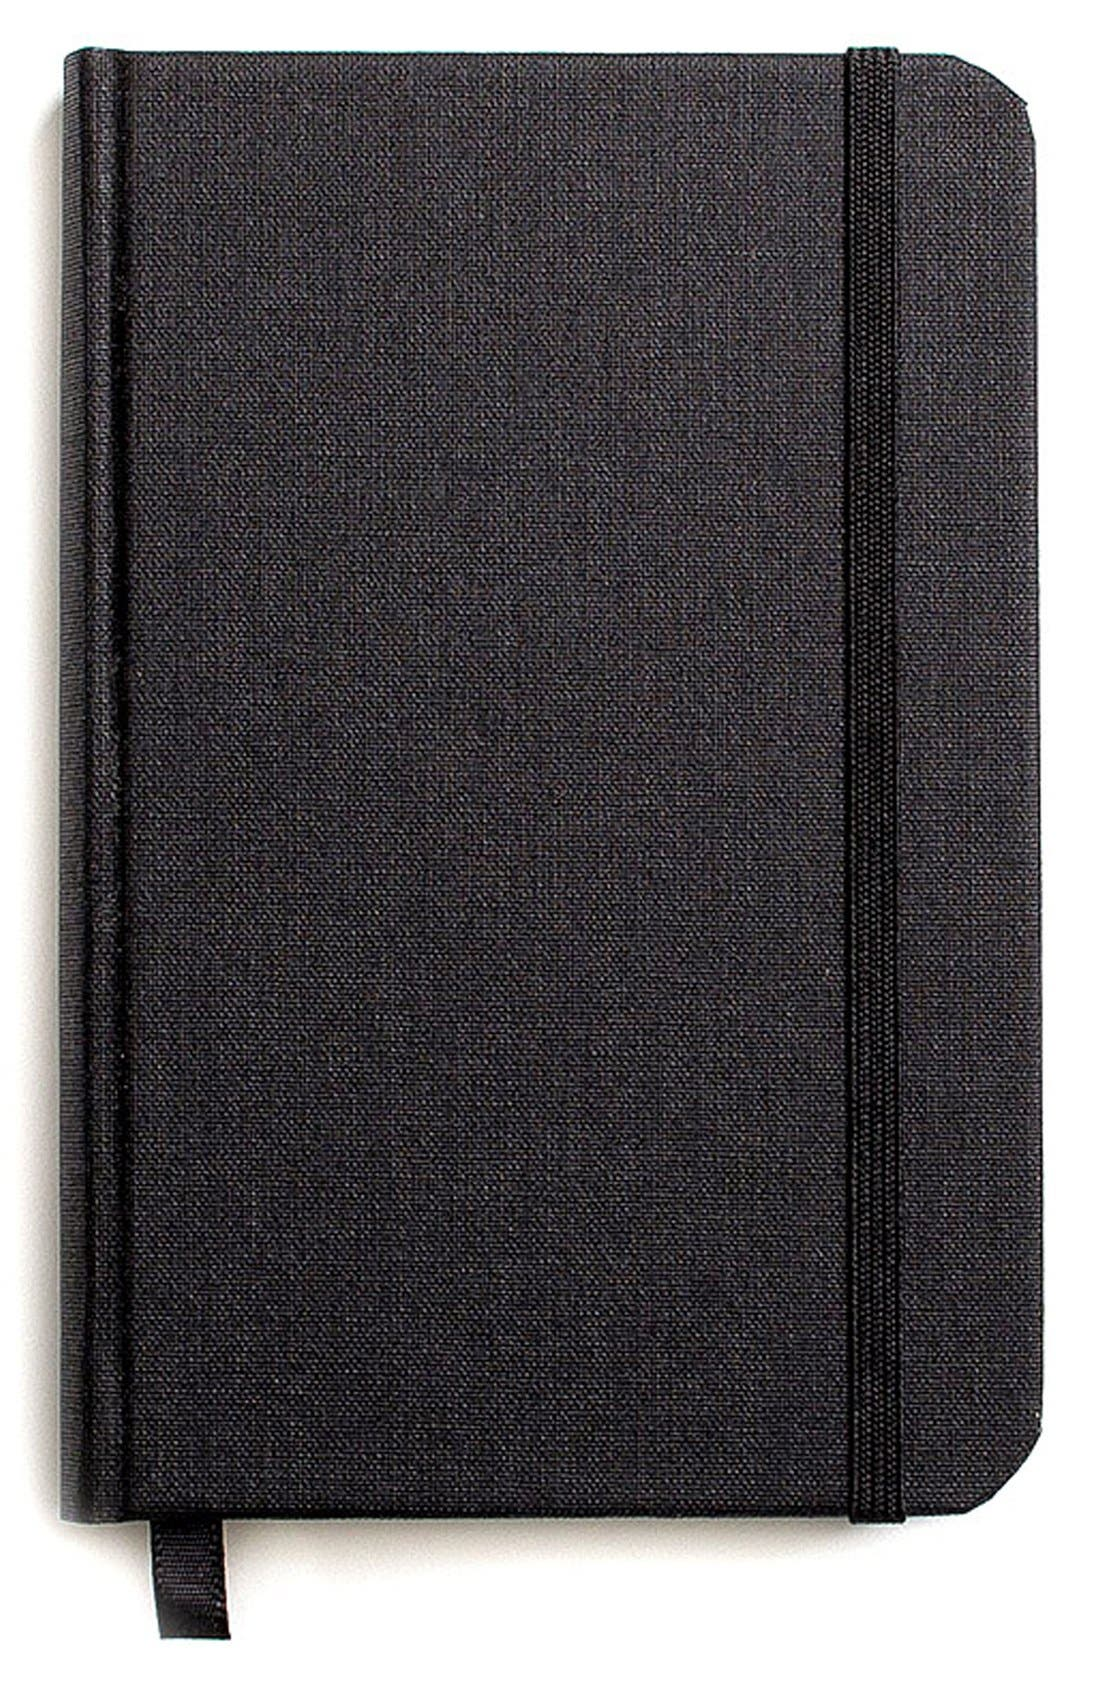 Main Image - Shinola Hardcover Linen Journal